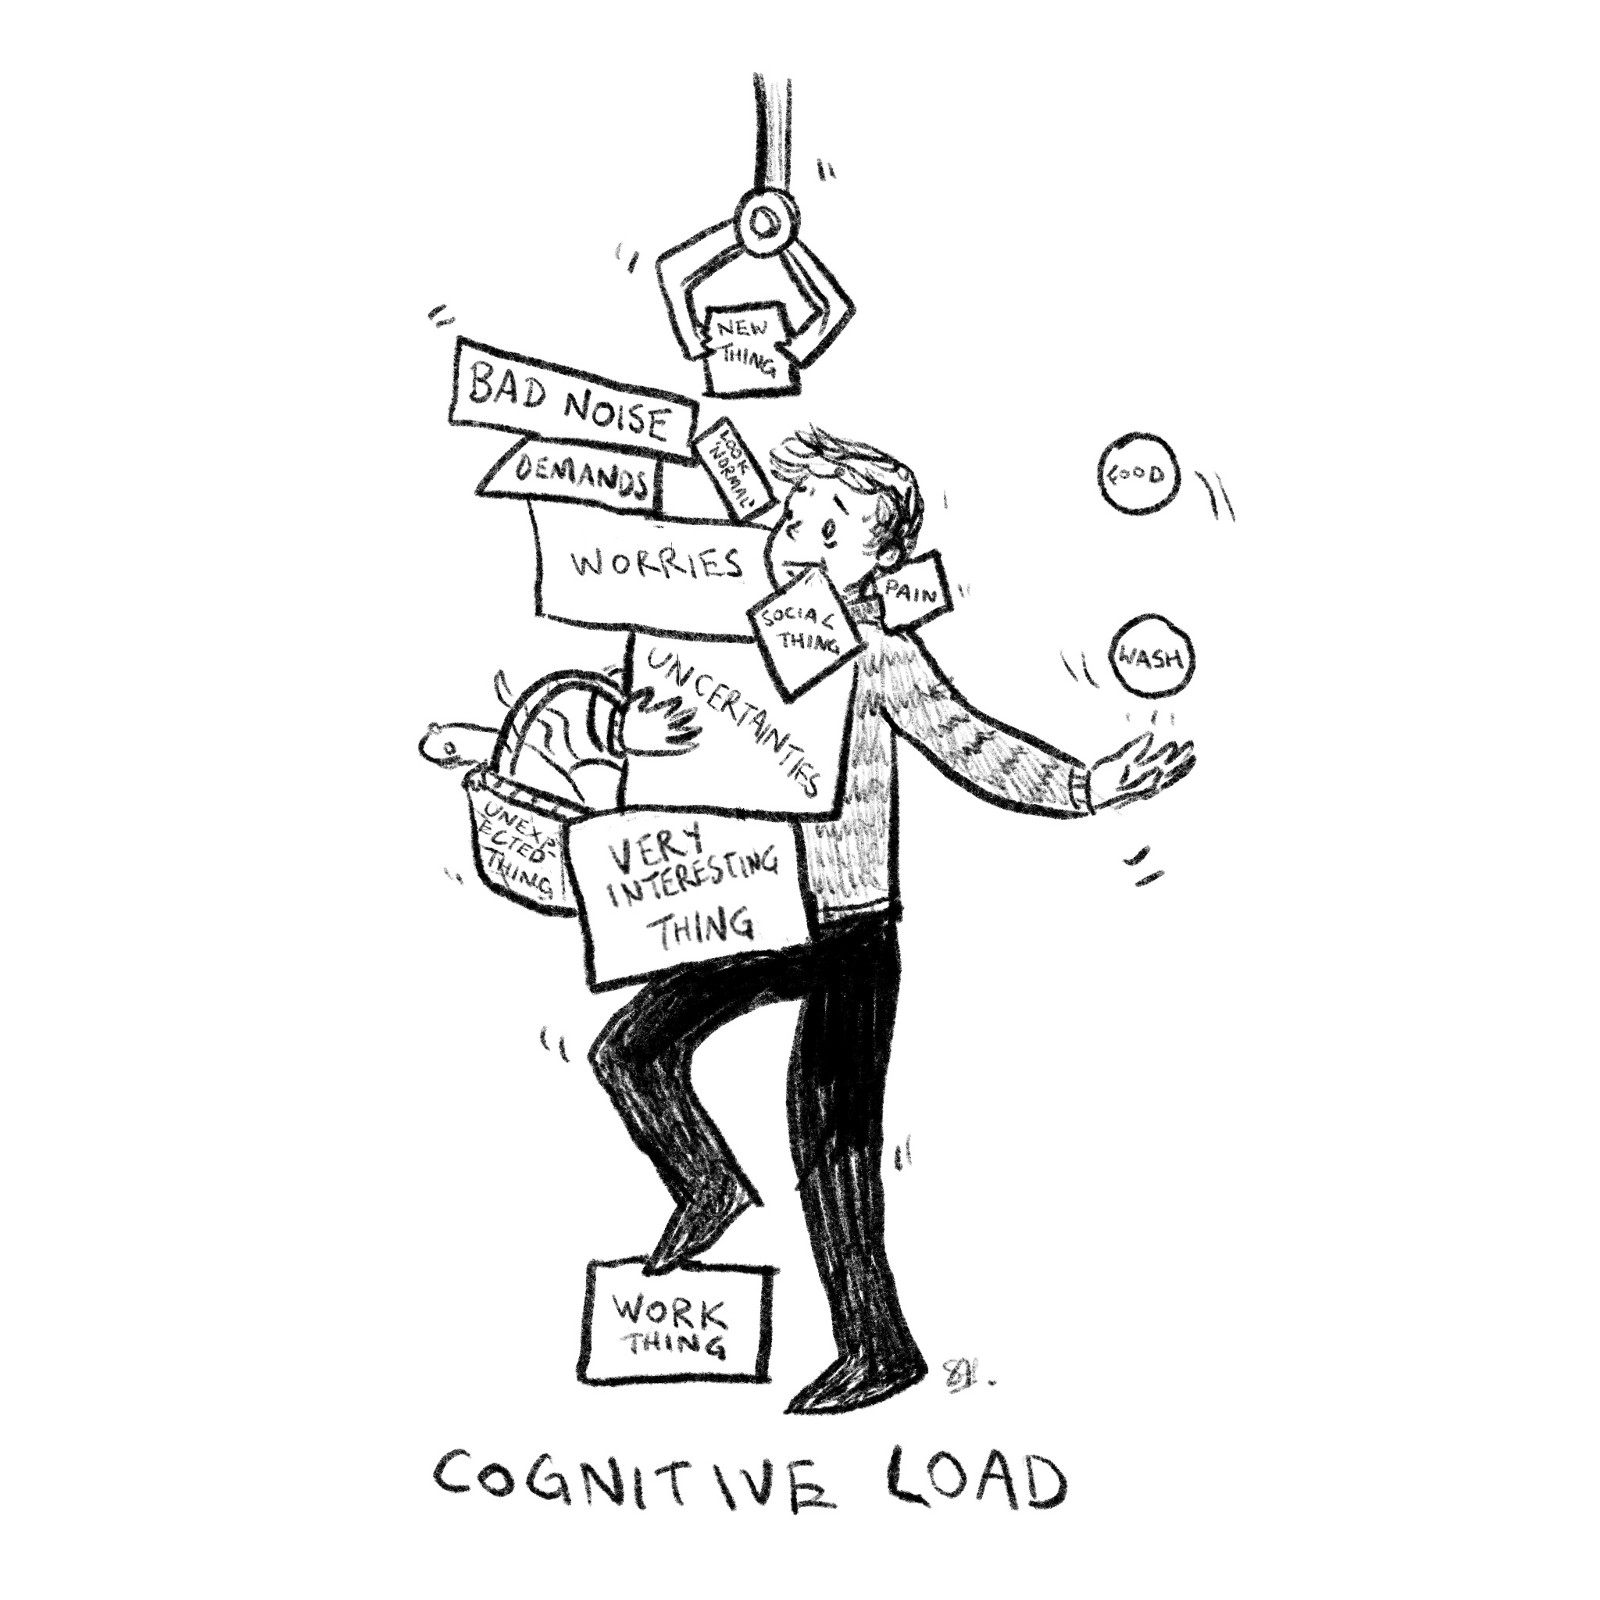 "Image description: drawing of a person looking towards the top right of the window. They are wearing a fuzzy sweater and black pants and shoes, and is perched with one shoe on a rectangle blocks labels ""WORK THING."" They are juggling two balls, one labeled ""FOOD"" and one labeled ""WASH,"" in his left hand. They are balancing a diamond block labeled ""PAIN"" on their left shoulder. On  their right side, they are balancing a pile of differently shaped blocks on their thigh and holding them in place with their right hand. The blocks are labeled in all caps, from top to bottom:      •Bad Noise      •Demands     •Look ""Normal""     •Worries     •Social Things     •Uncertainties      •Very Uninteresting Things A crane is depositing a square block labeled ""NEW THING"" on the top of the pile. Finally, the person is also holding a basket full of snakes in the crook of their left arm. The image is captioned ""COGNITIVE LOAD."""